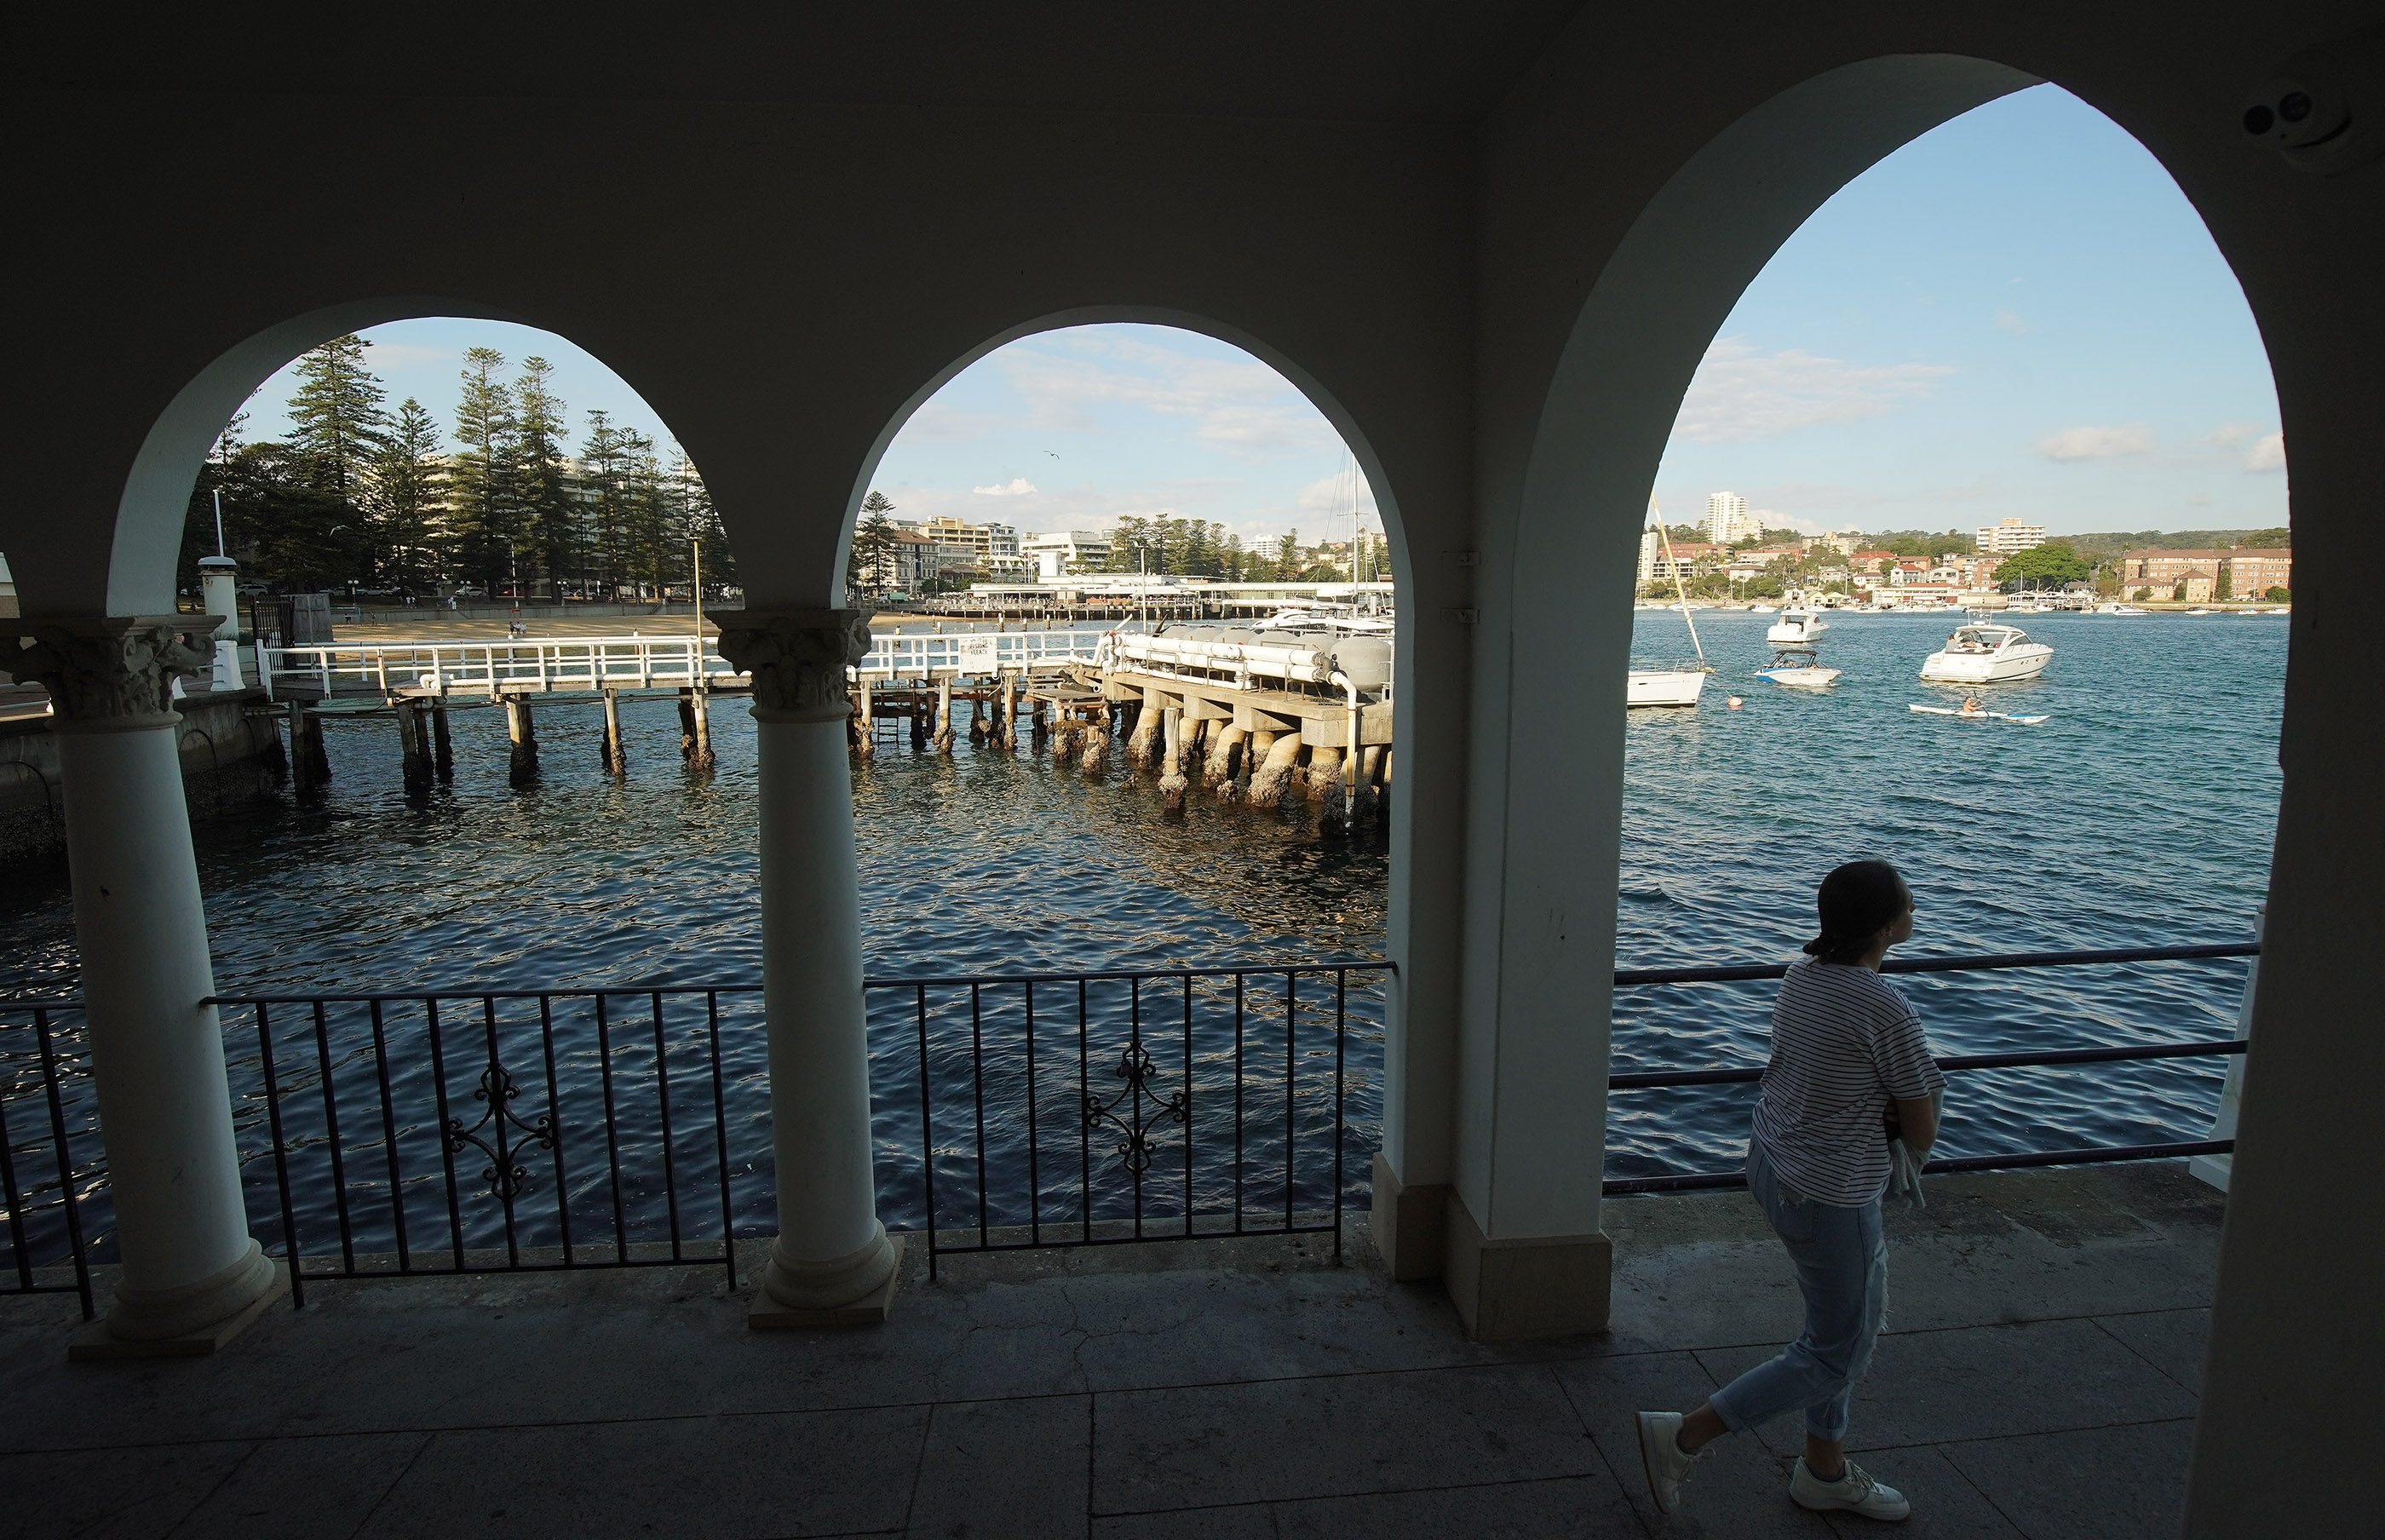 A pedestrian walks near the wharf in Manly, Australia, on May 18, 2019. President Russell M. Nelson, with his wife, Sister Wendy Nelson, visited the city on his nine-day, seven-nation Pacific Ministry Tour.